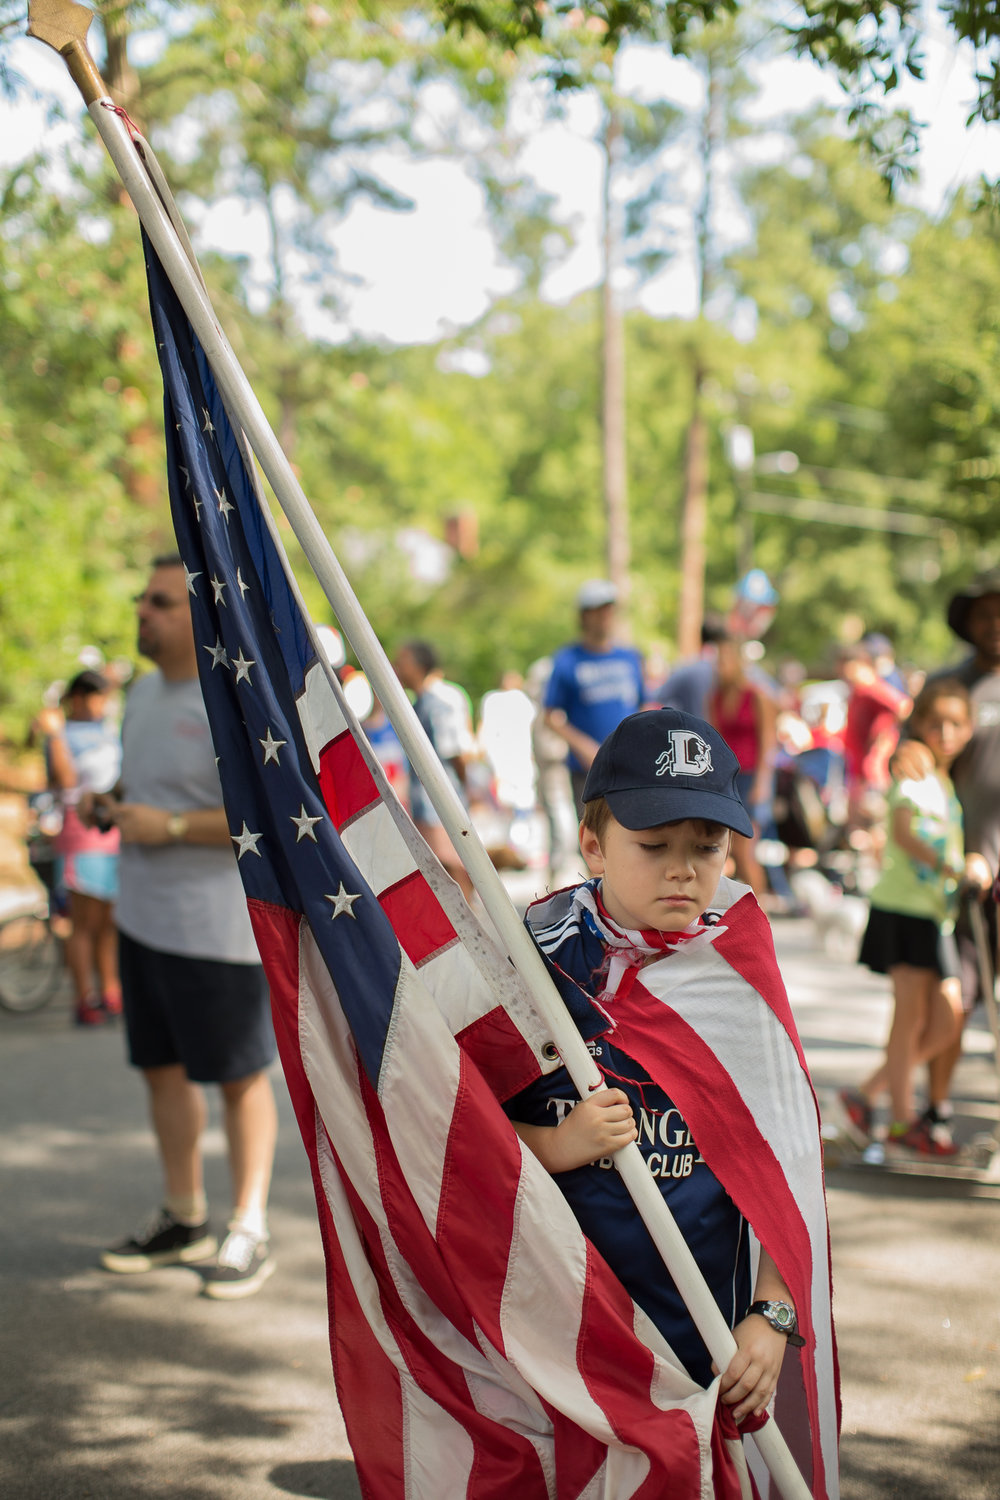 The Watts-Hillandale July 4th Parade in Durham. Personal work.